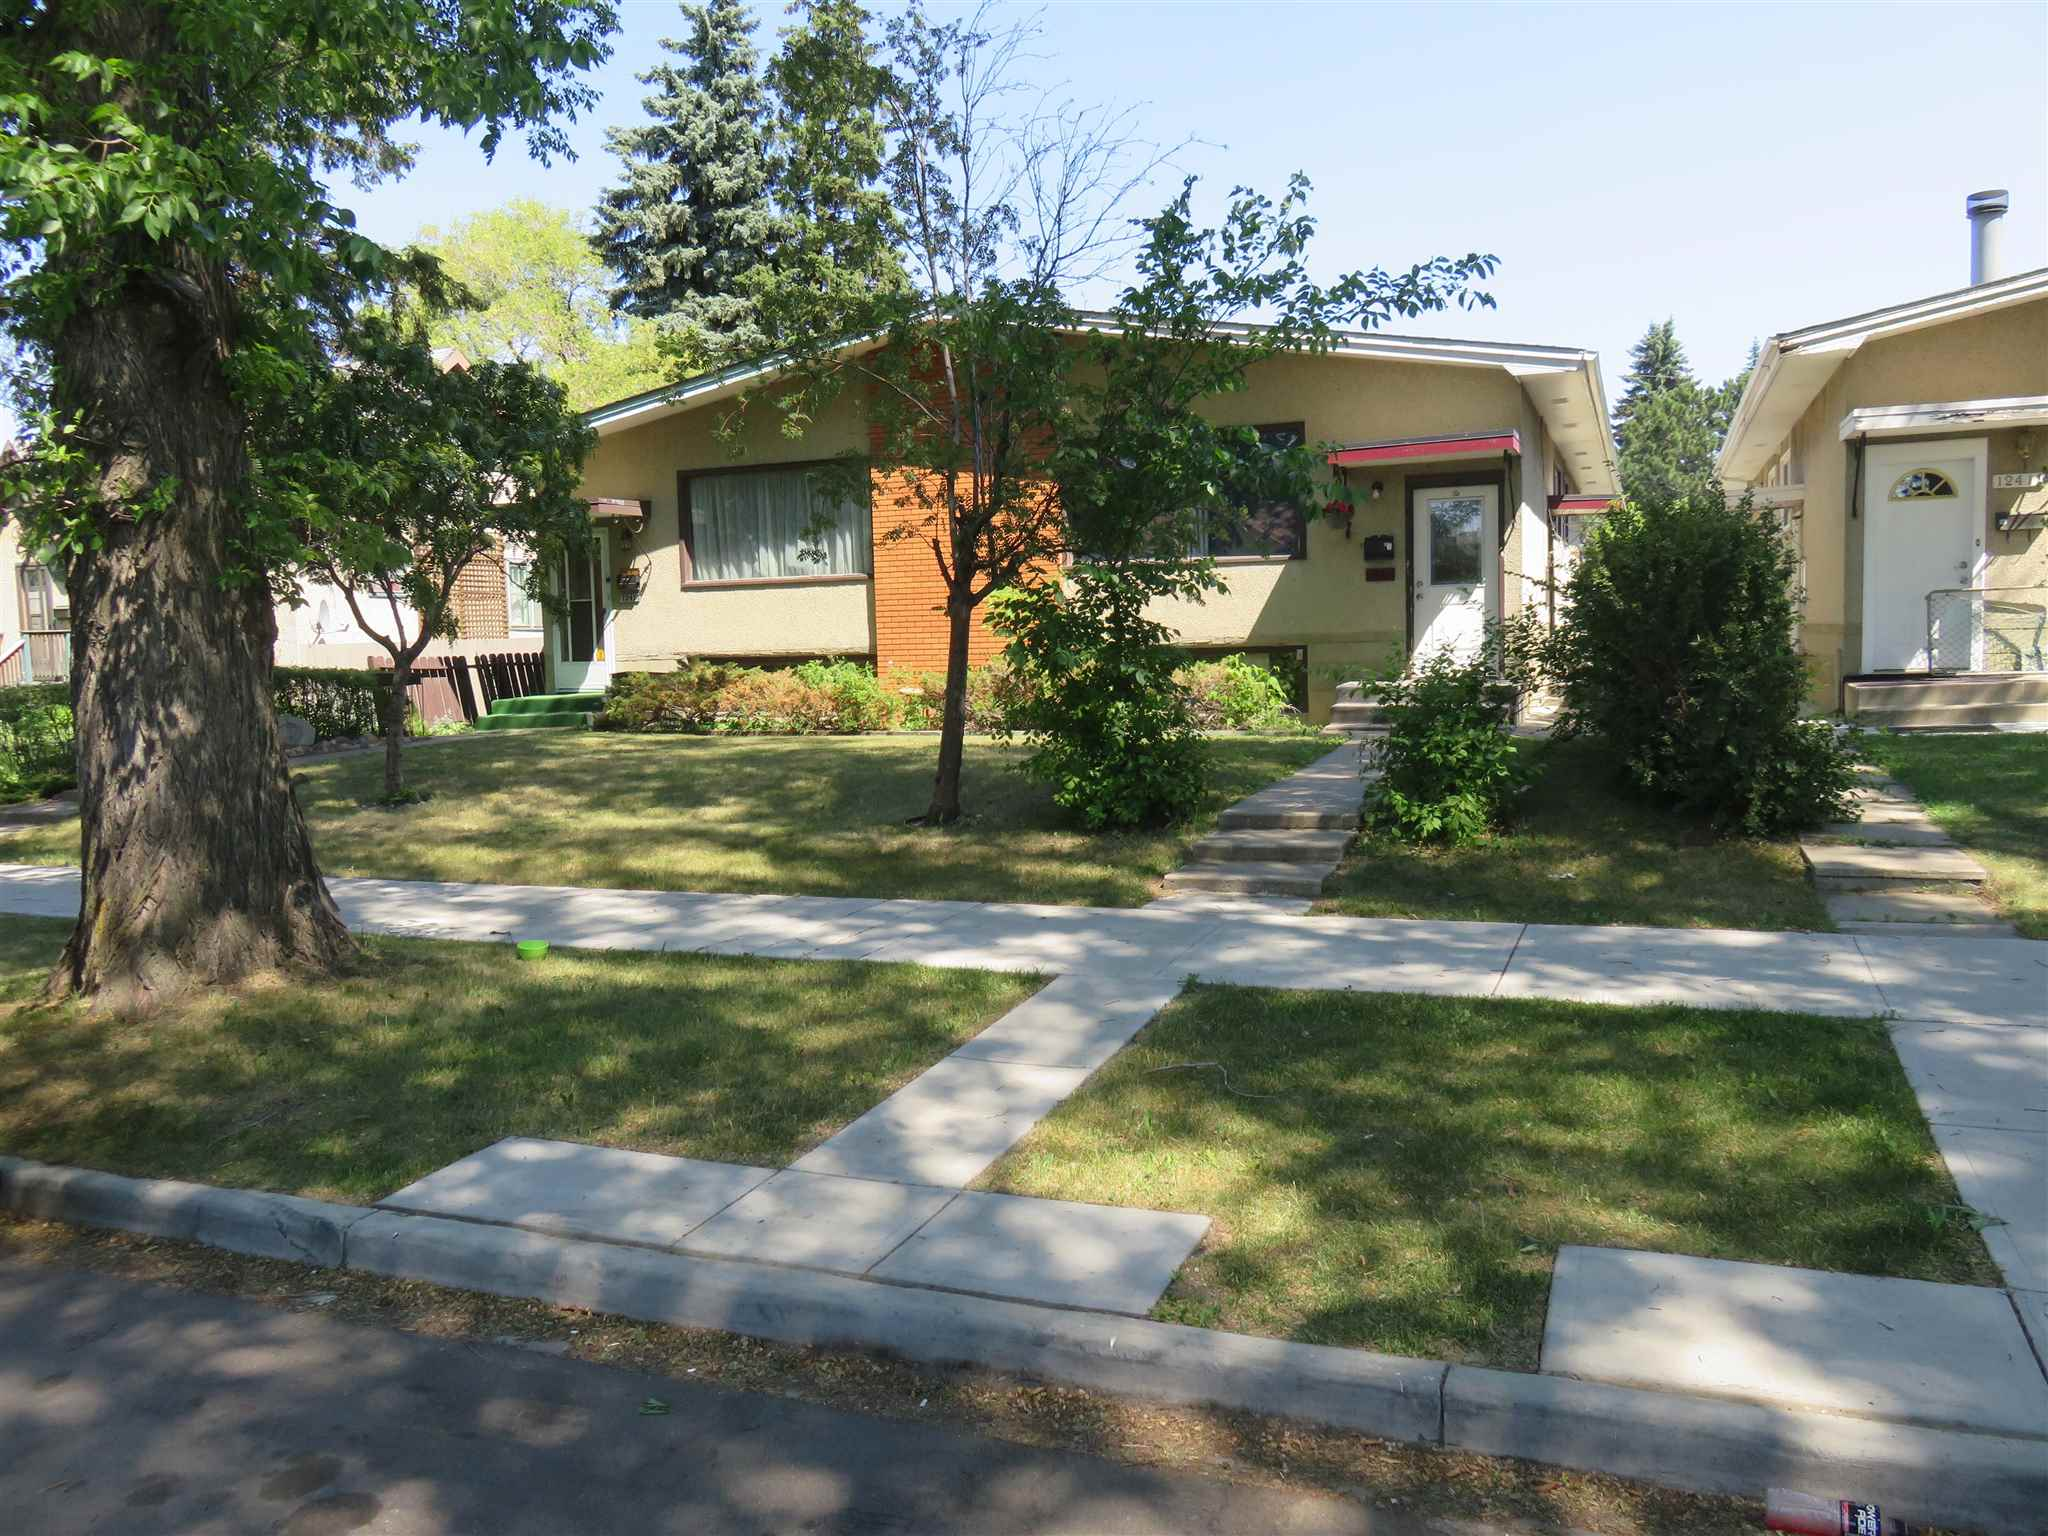 """GREAT INVESTMENT PROPERTY!!...F/F, 5Bdrms/2Full Baths, 2 KITCHENS, 2 LAUNDRY ROOMS, 1/2 DUPLEX w/well over 2000SQ.Ft of Living Space on a 3900Sq.Ft Lot with plenty of space to build an """"Income Garage too!"""" In the Community of """"PRINCE CHARLES!"""" Right off Yellowhead Trail & 127 Street. NW. All newer LAMINATE FLOORING on the main floor with carpet in all 3 Upper Bedrooms. Nice bright Kitchen w/a full 4pc Bathroom and main floor Laundry Room. The Basement has a Lg Family Room, Separate Kitchen, 2 Bedrooms, Full 4Pc Bathroom, A Separate Laundry Room & Plenty of Storage Area. Great quiet Street with K-9 Schools, Shopping, & a ETS Bus Stop a short walk from your front door. GREAT PROPERTY WITH $2300.00 AVAILABLE PER MONTH!!"""